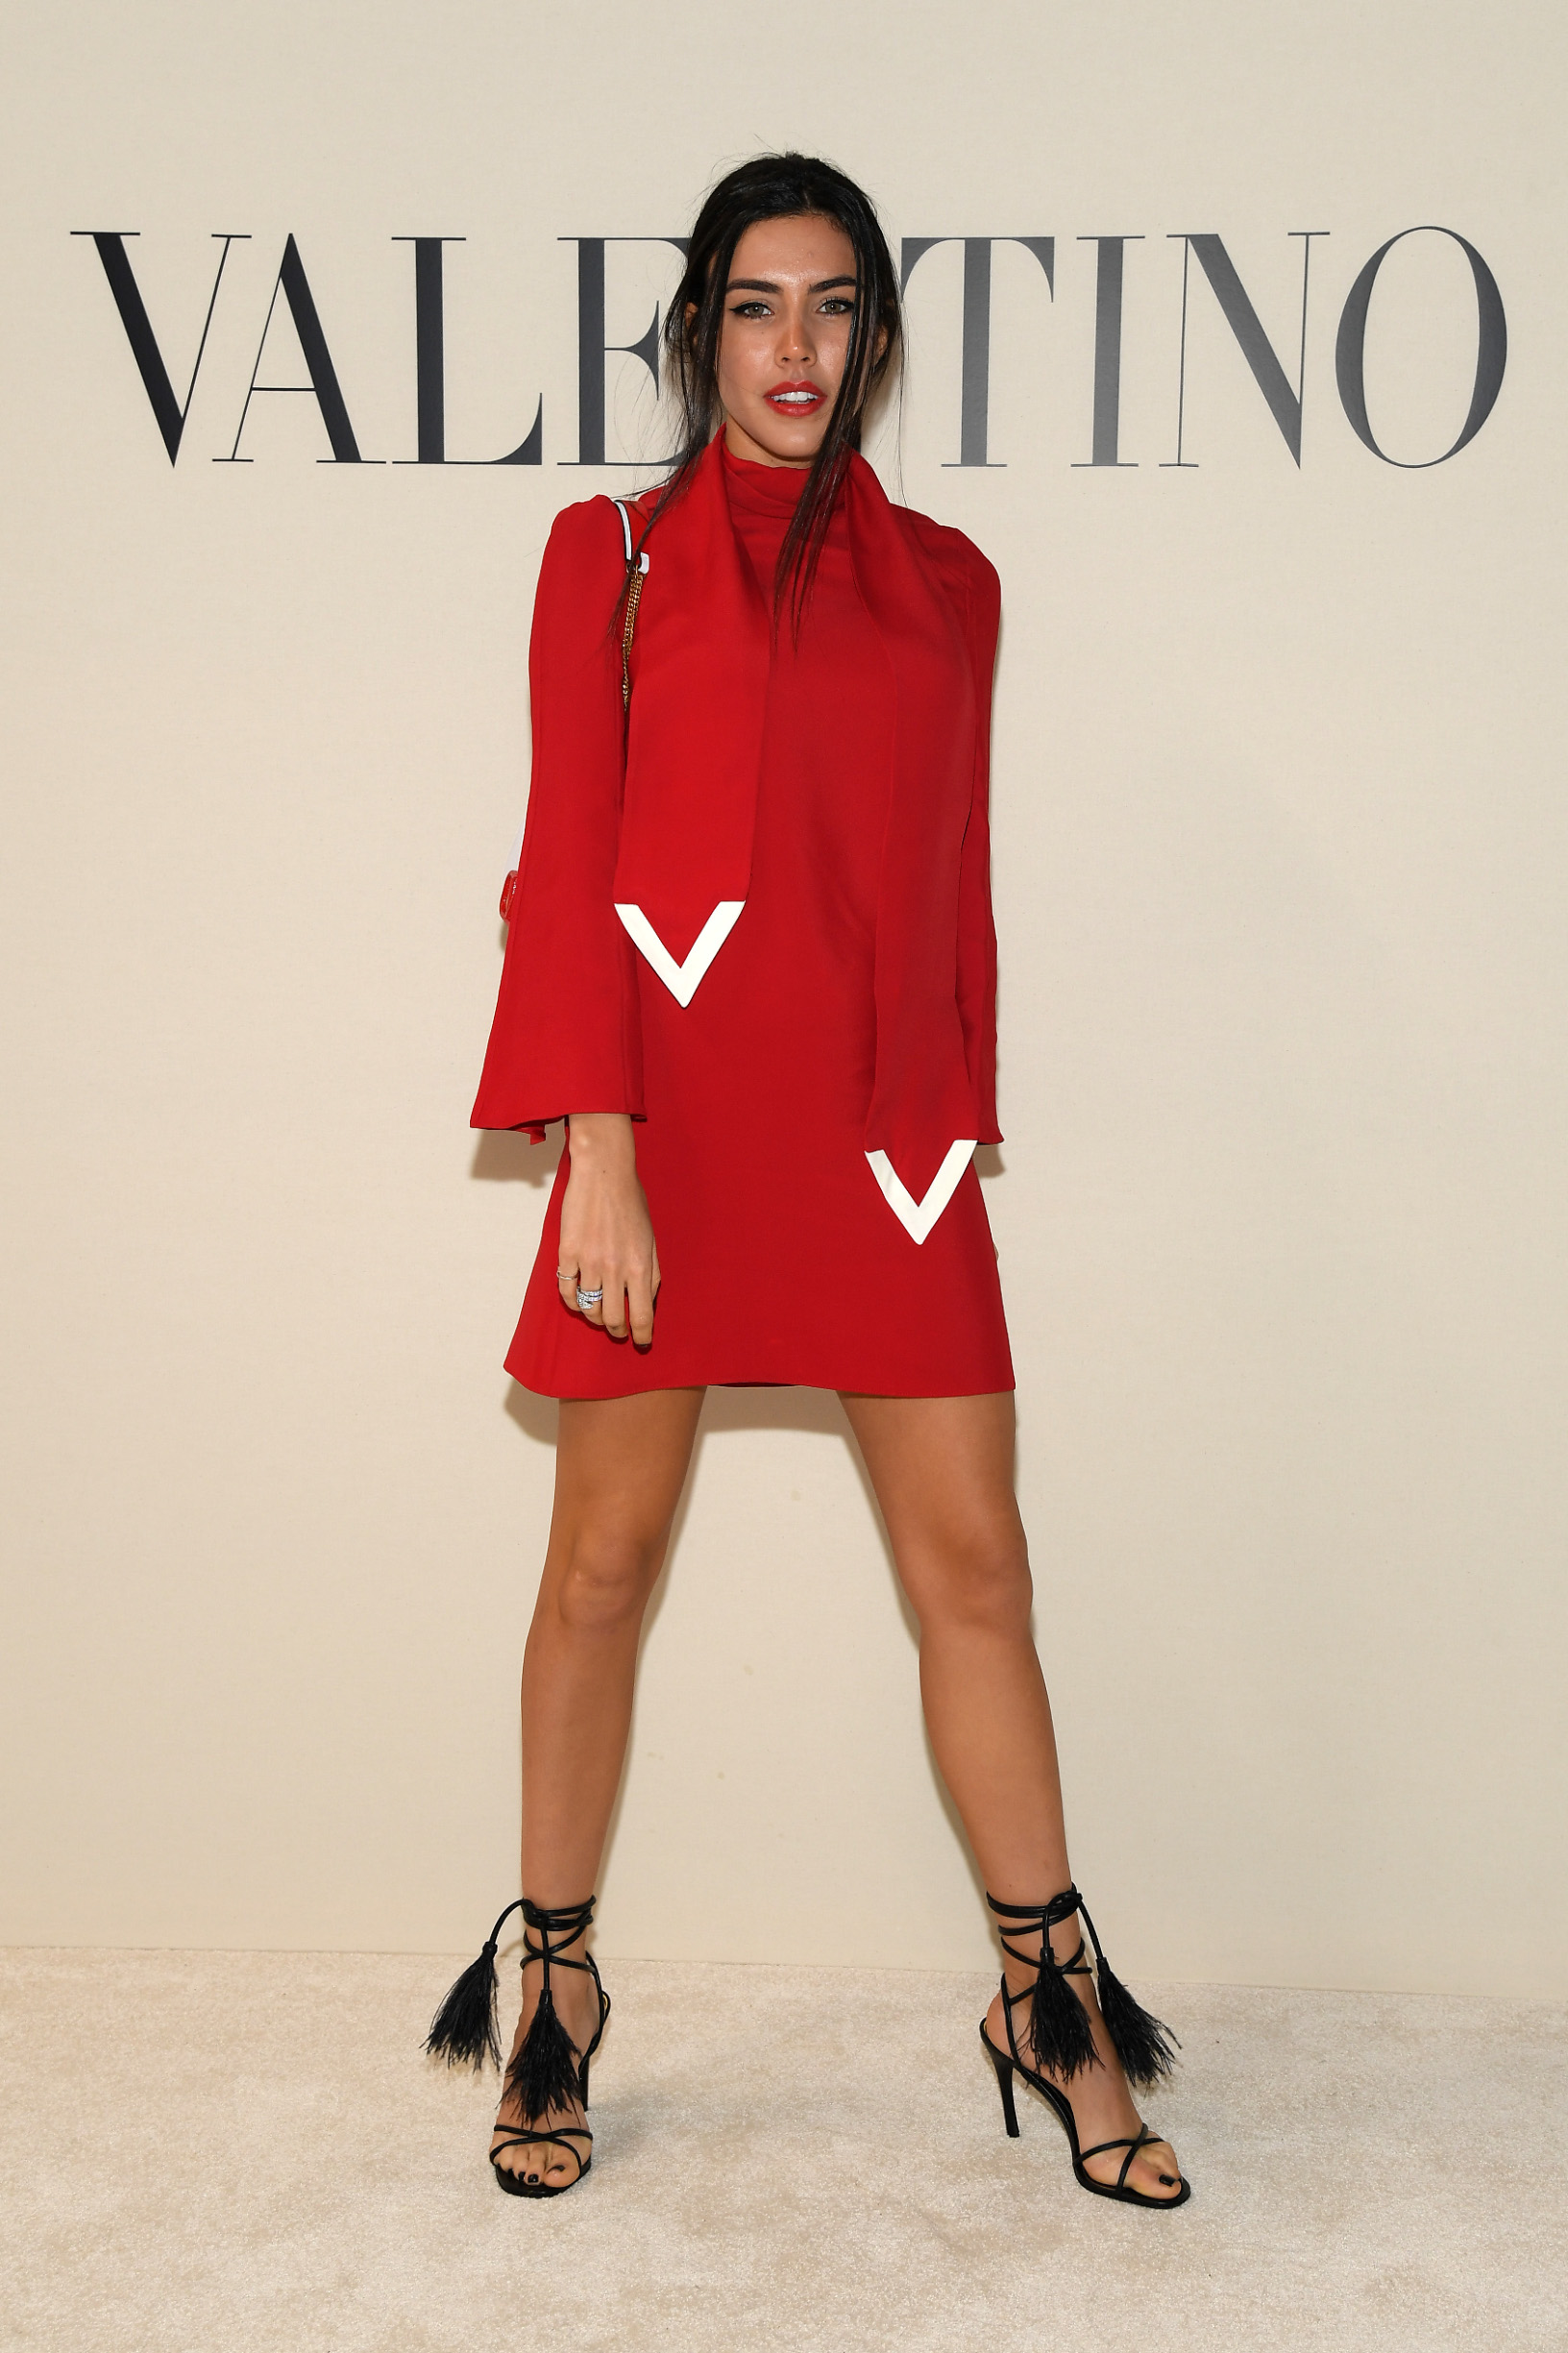 PARIS, FRANCE - MARCH 01: (EDITORIAL USE ONLY) A guest attends the Valentino show as part of the Paris Fashion Week Womenswear Fall/Winter 2020/2021 on March 01, 2020 in Paris, France. (Photo by Pascal Le Segretain/Getty Images)